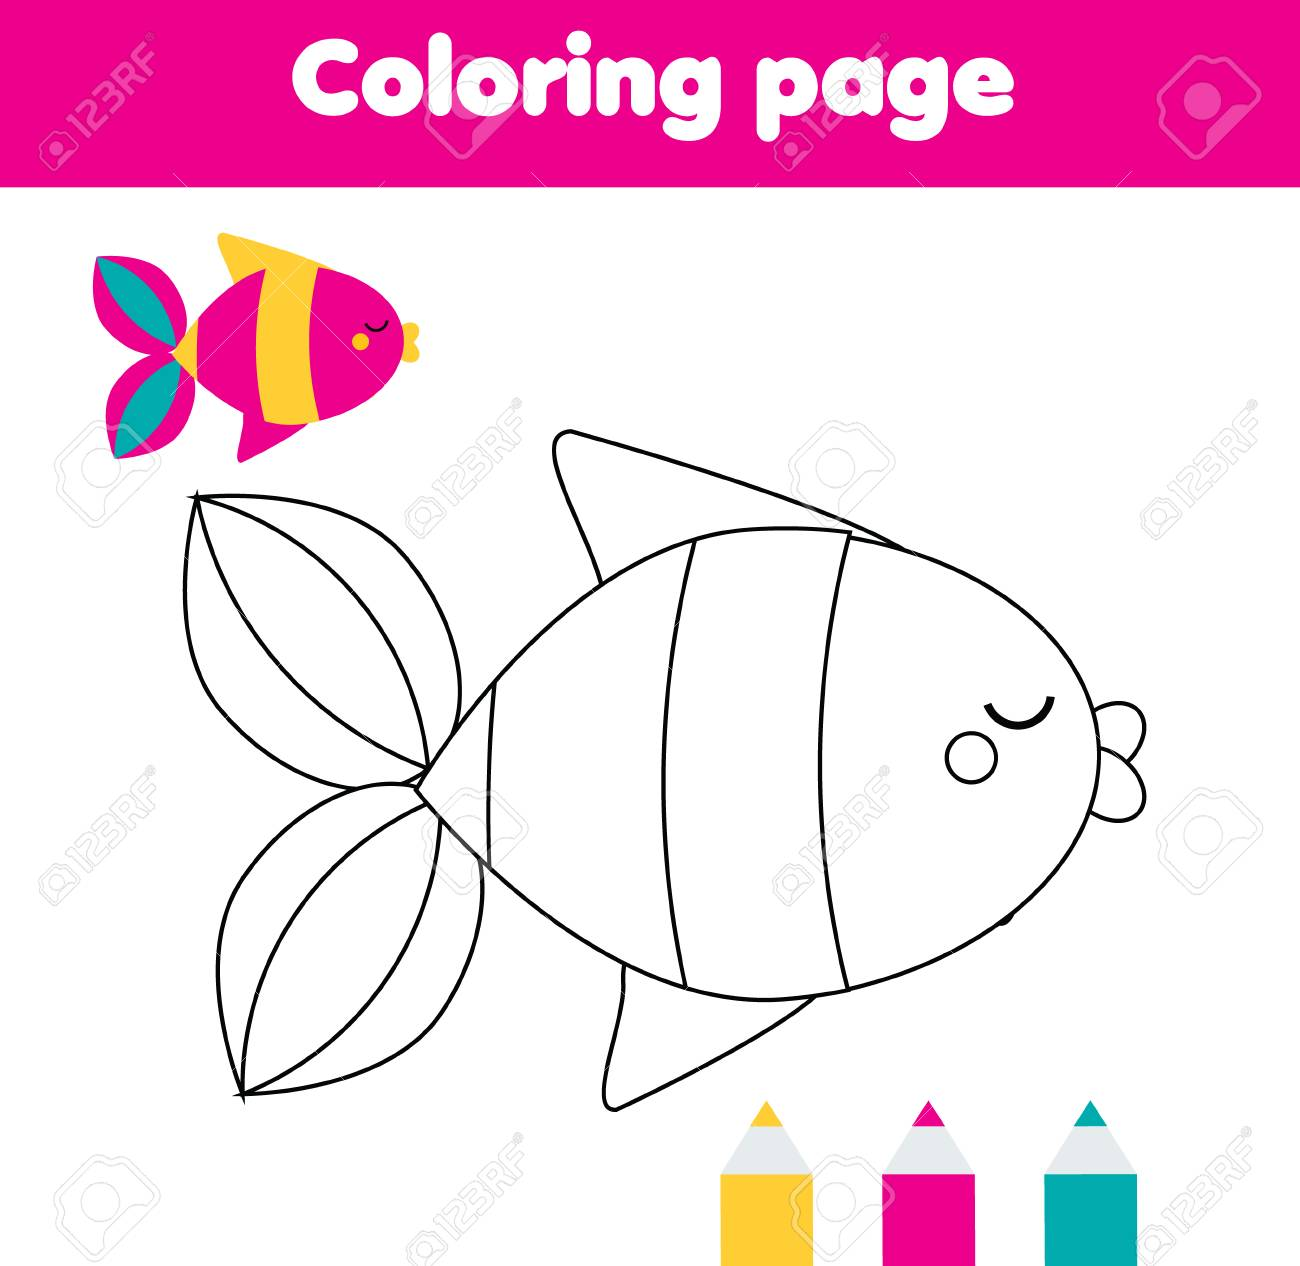 coloring page with fish drawing kids activity for toddlers stock photo picture and royalty free image image 101100815 coloring page with fish drawing kids activity for toddlers